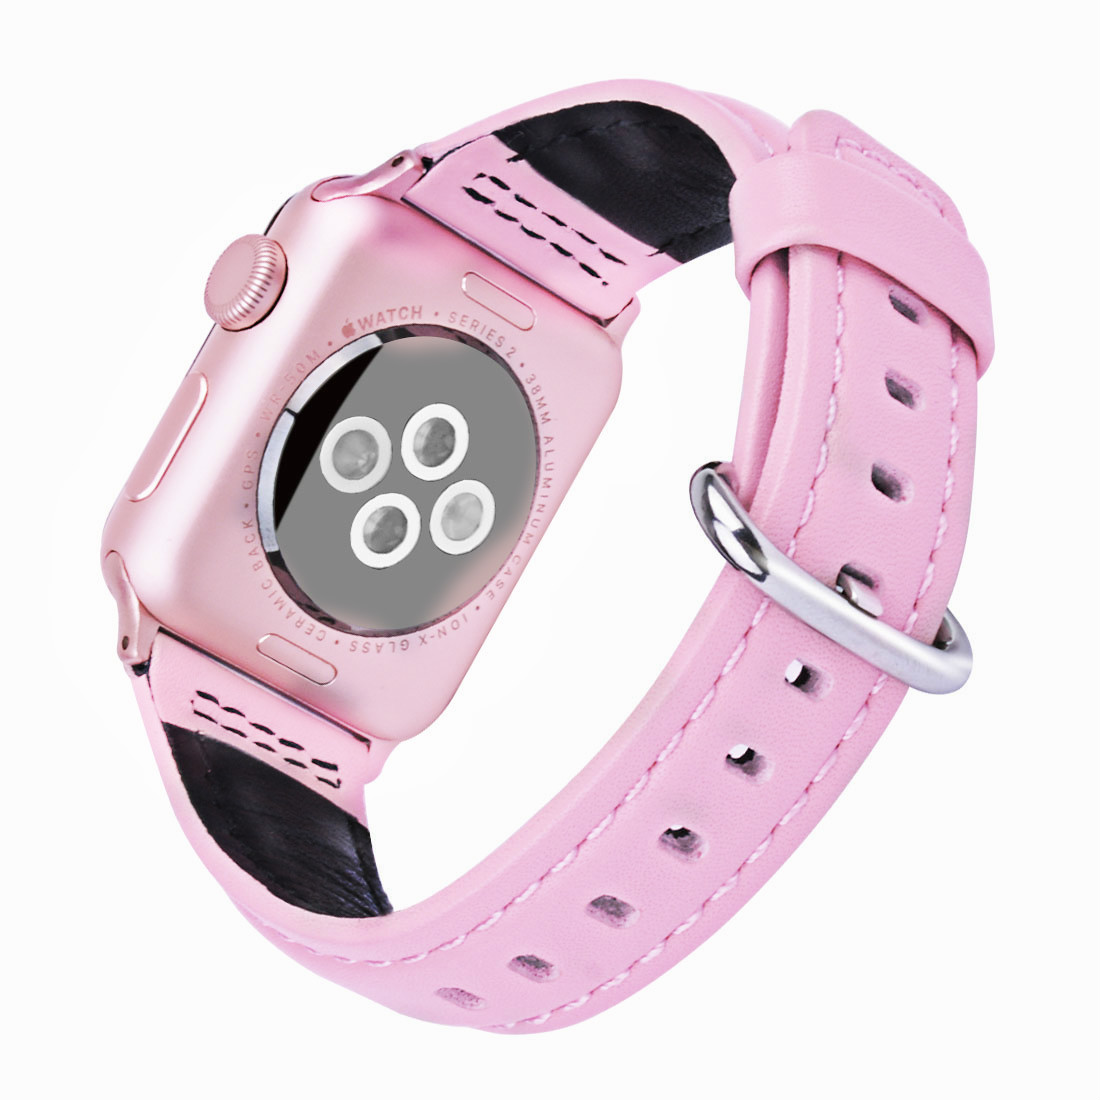 Apple Watch Band Wolait Soft Genuine Sheep Leather Bands Strap For 2 Series 1 38mm Rose Gold Aluminum Pink Sport 3 42mm